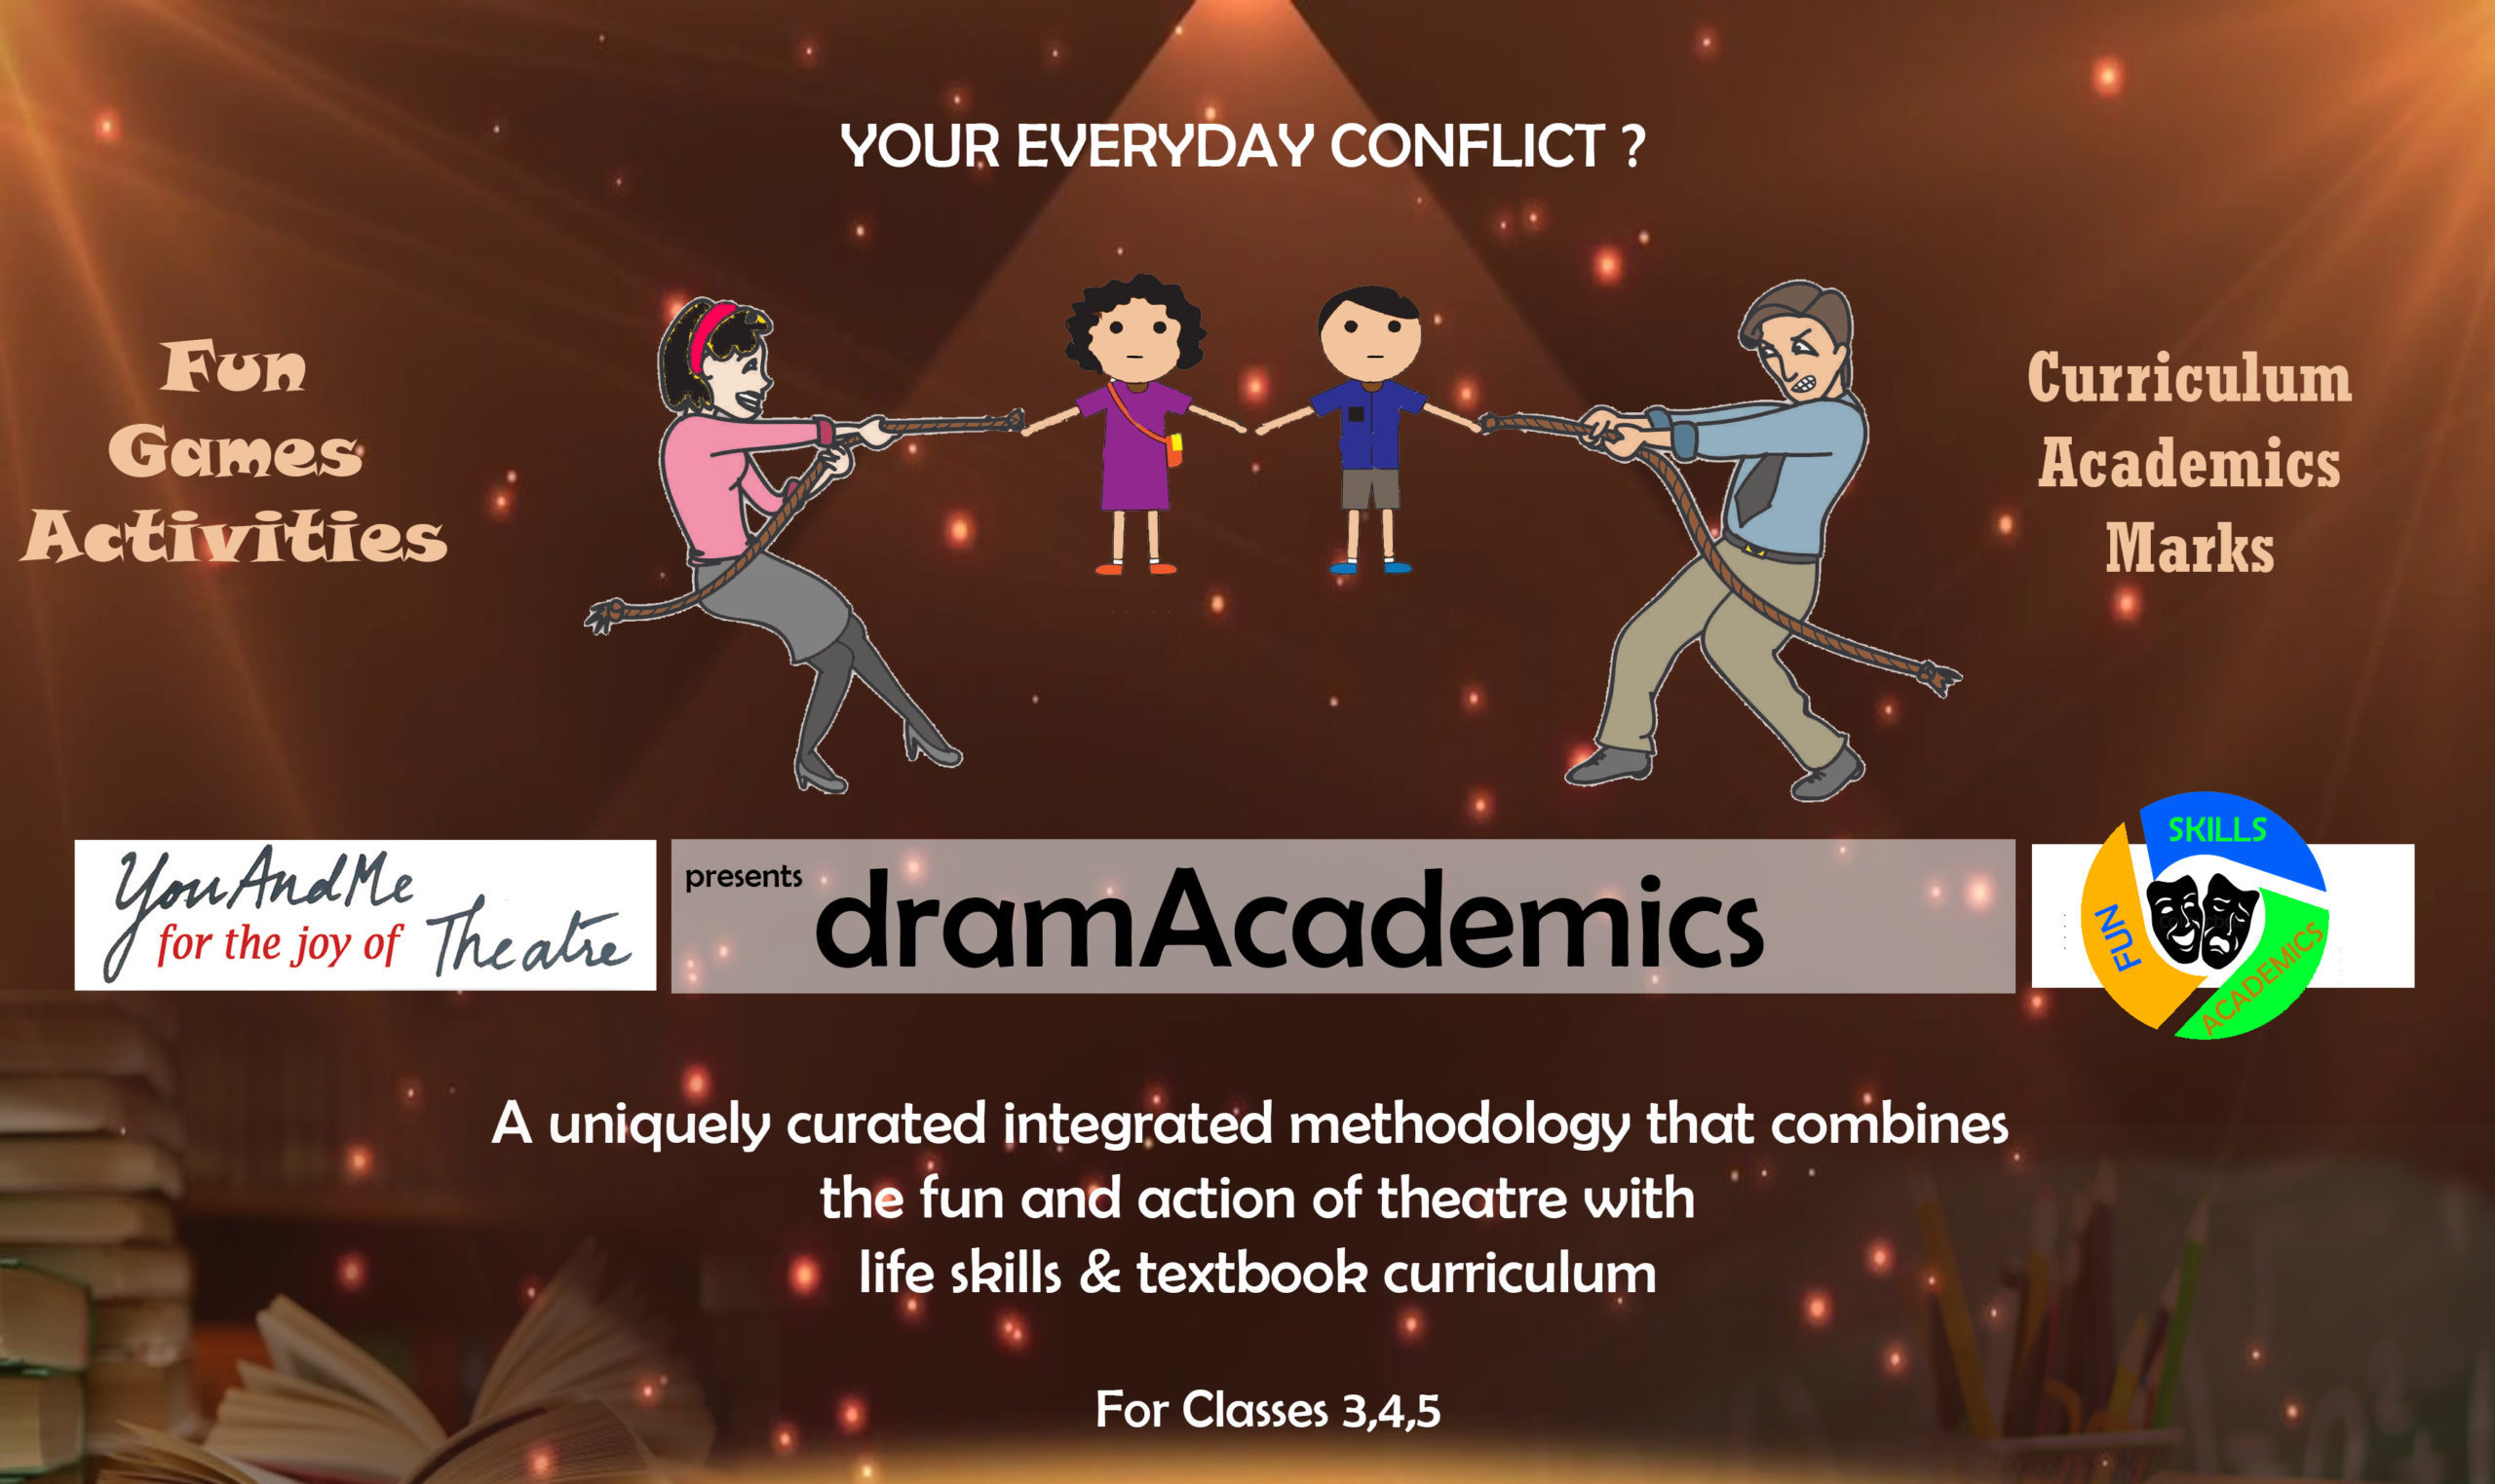 Poster for dramAcademics program